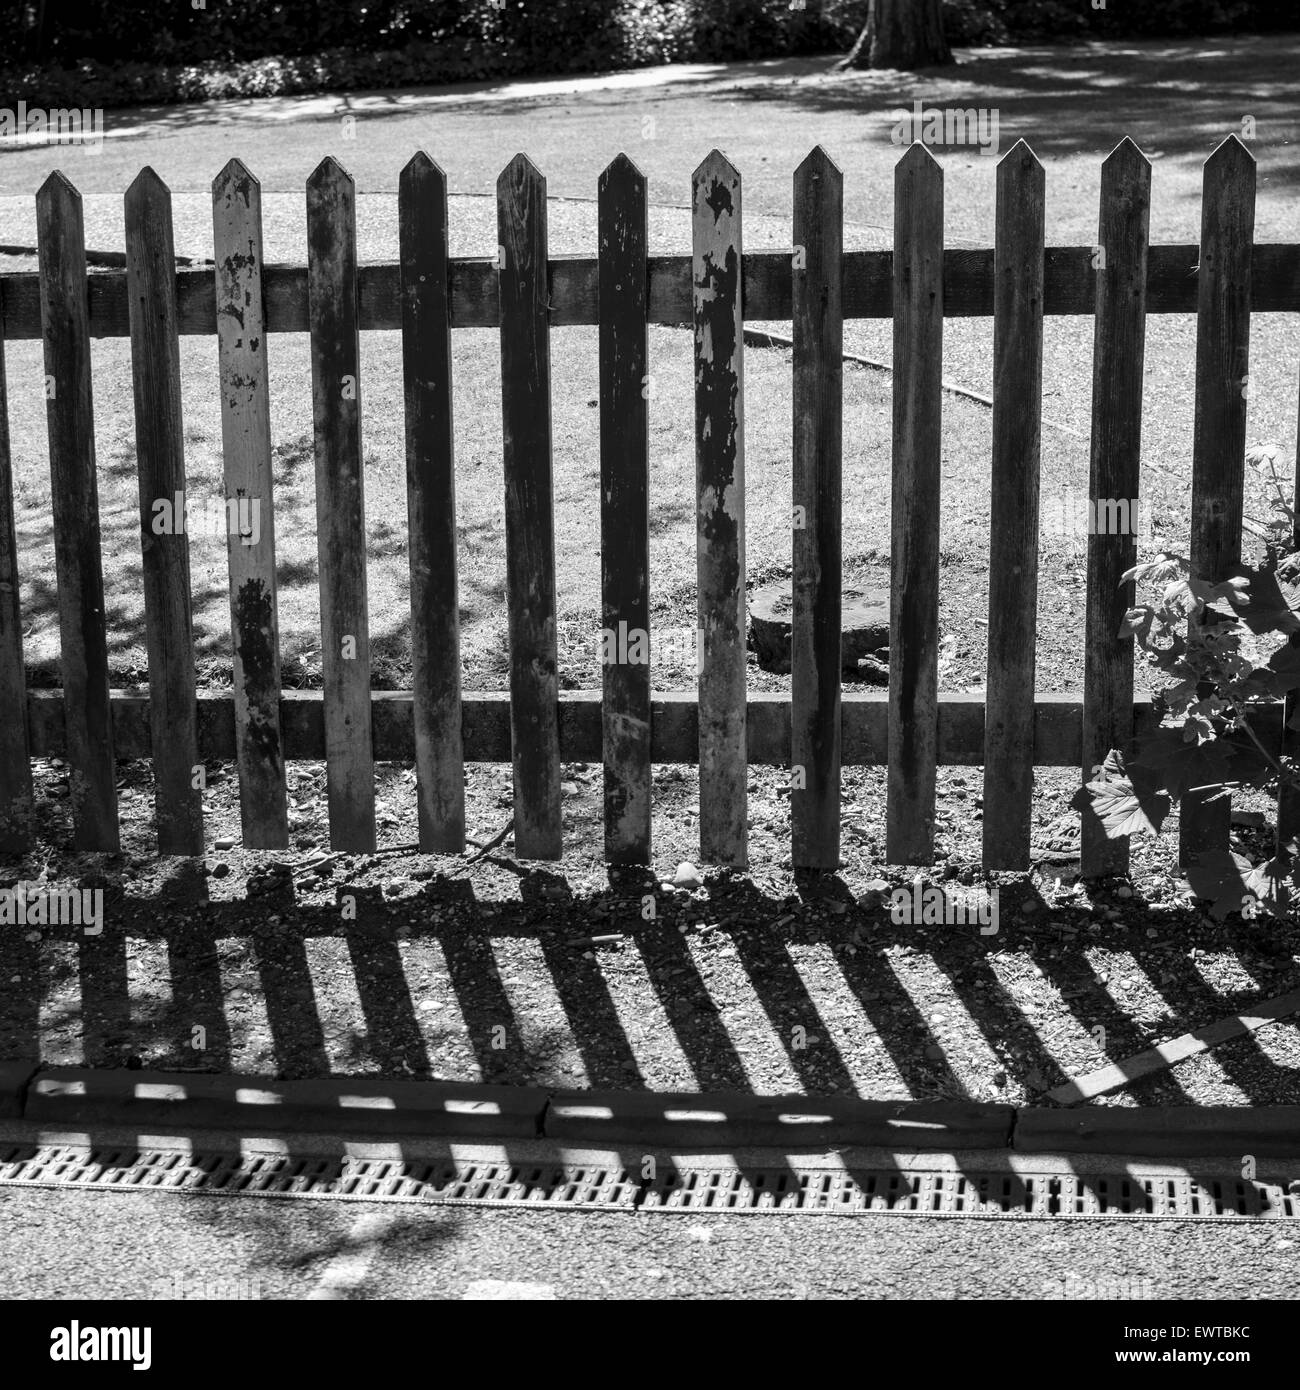 Wooden fence and shadow - Stock Image